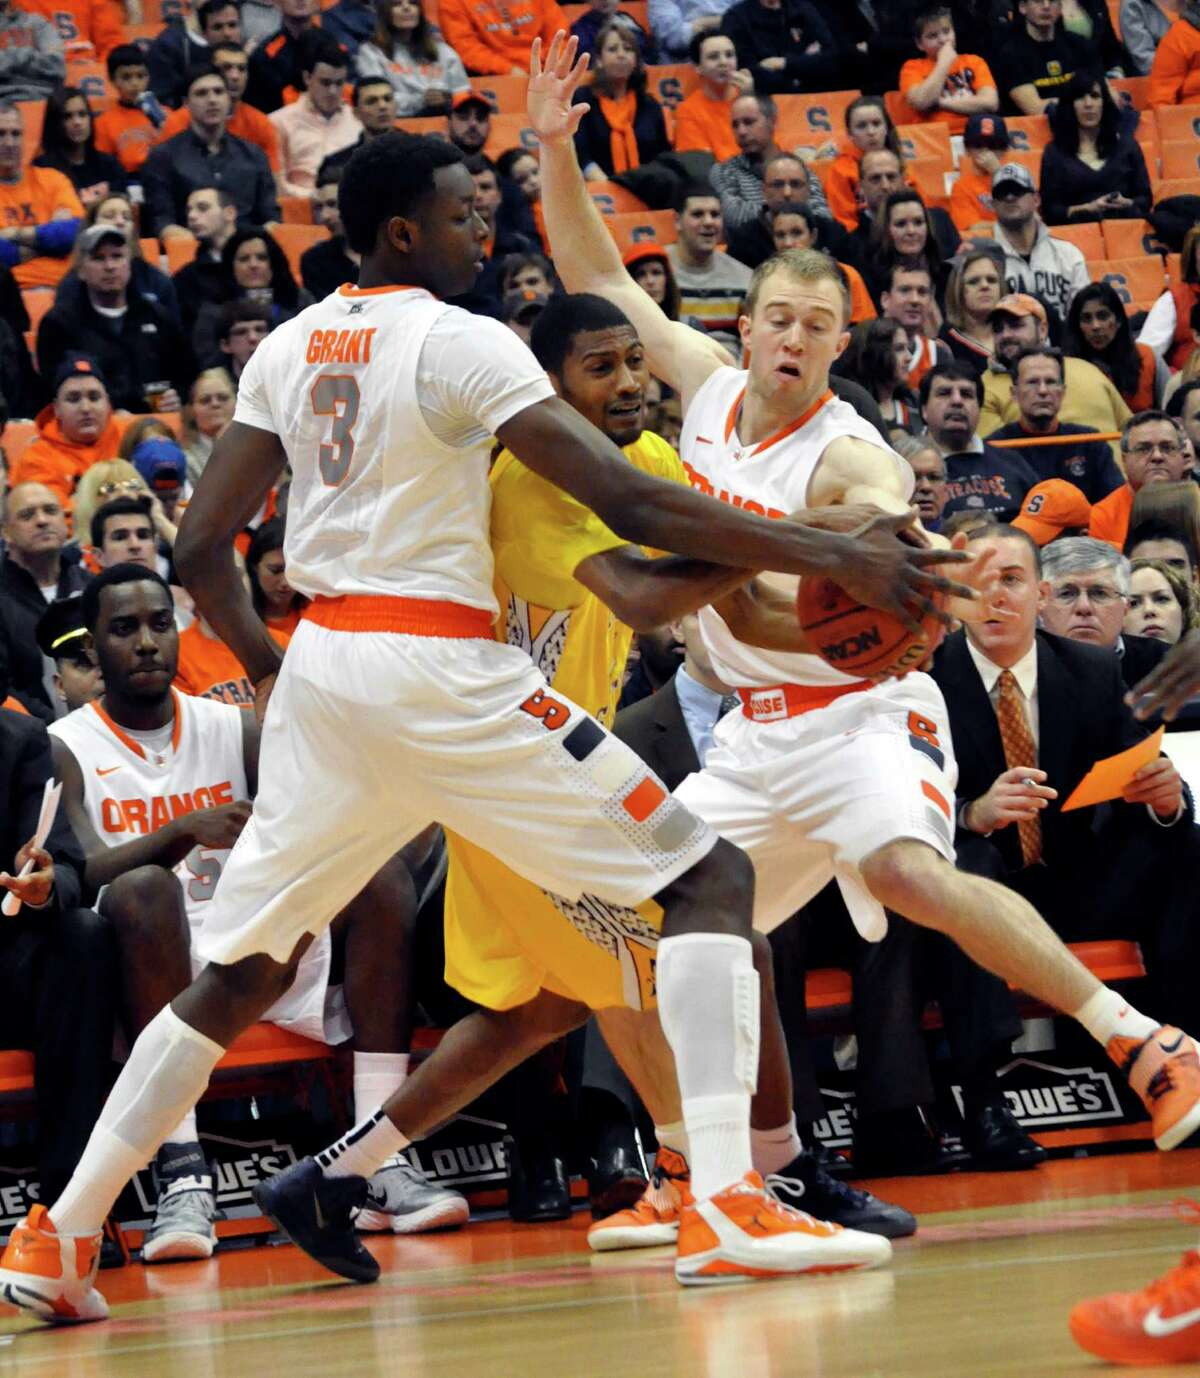 Alcorn State's Anthony Nieves is pressured by Syracuse's Jerami Grant, left, and Trevor Cooney during the first half of an NCAA college basketball game in Syracuse, N.Y., Saturday, Dec. 29, 2012. (AP Photo/Kevin Rivoli)